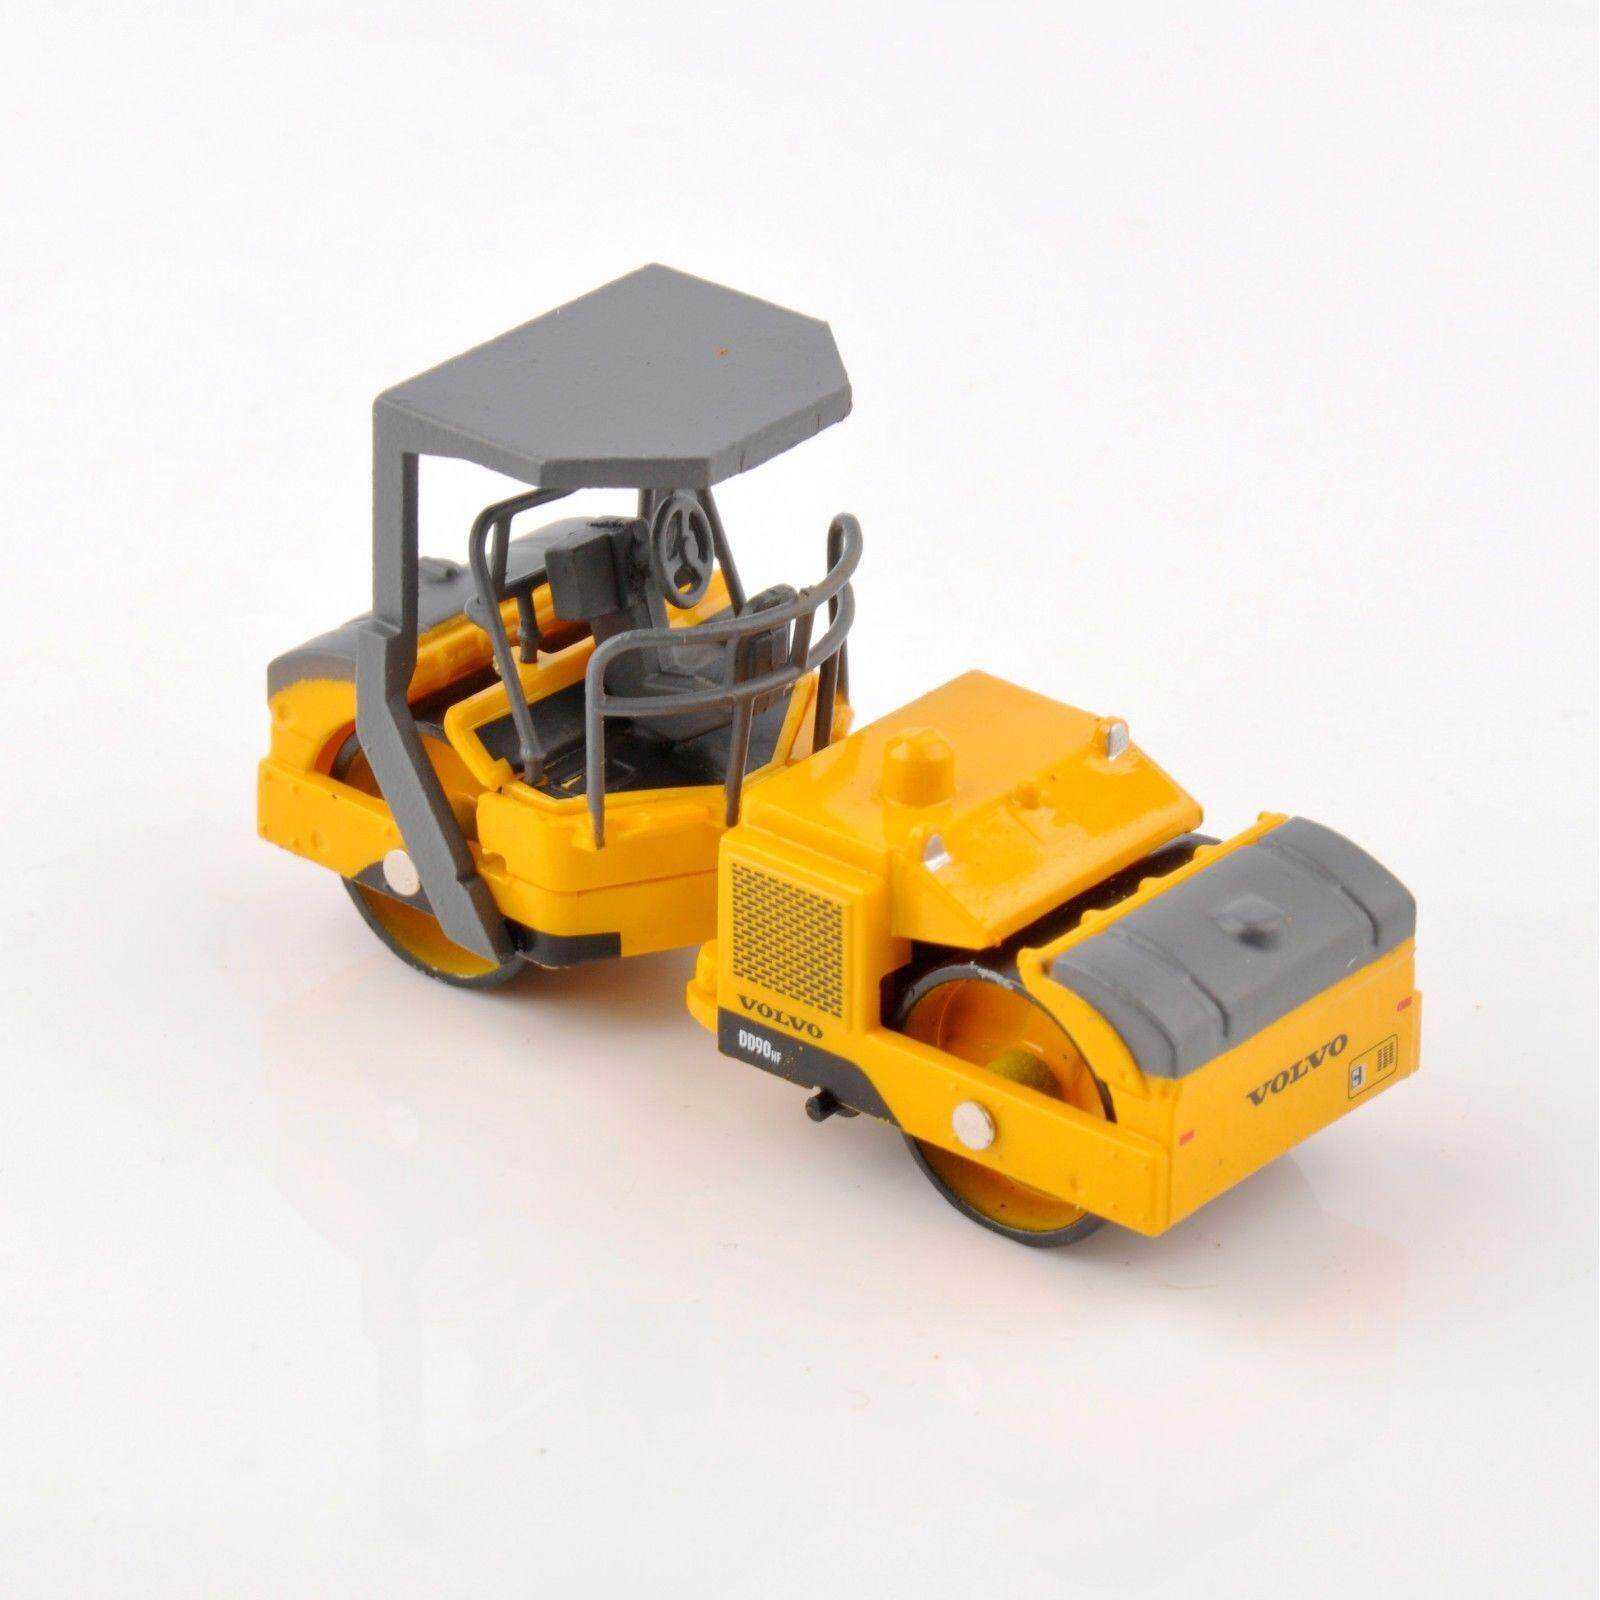 1/87 VOLVO DD90HF Tractor Road Roller Engineer Construction Truck Toys - intl